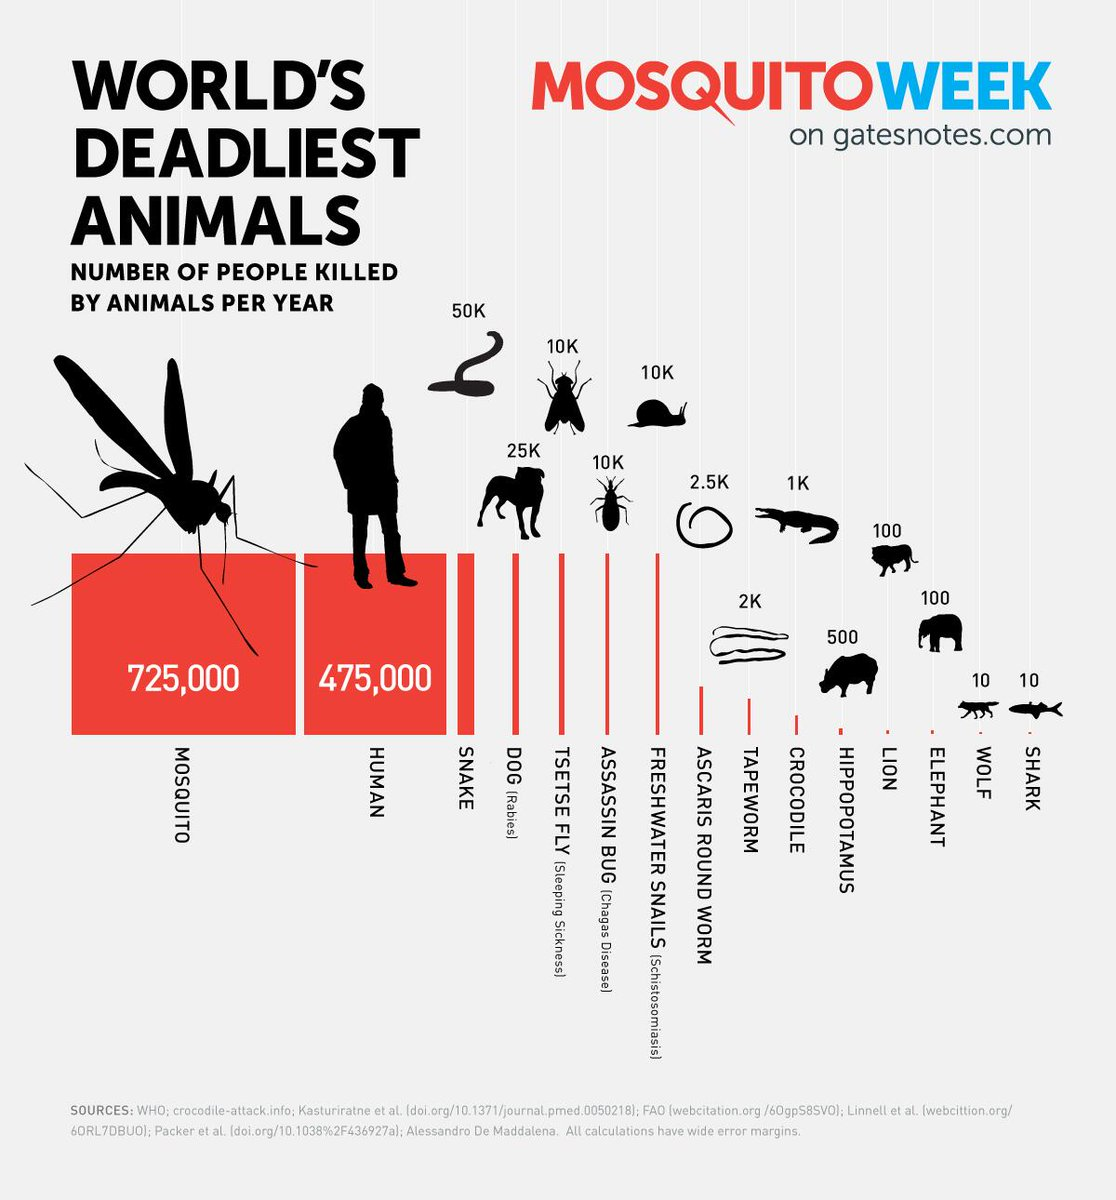 Bill Gates (@BillGates): Hey @SharkWeek, sharks are cool, but they're not even close to being the deadliest animal:  http://t.co/bvE7TuaBZF http://t.co/aWjbnw46N4